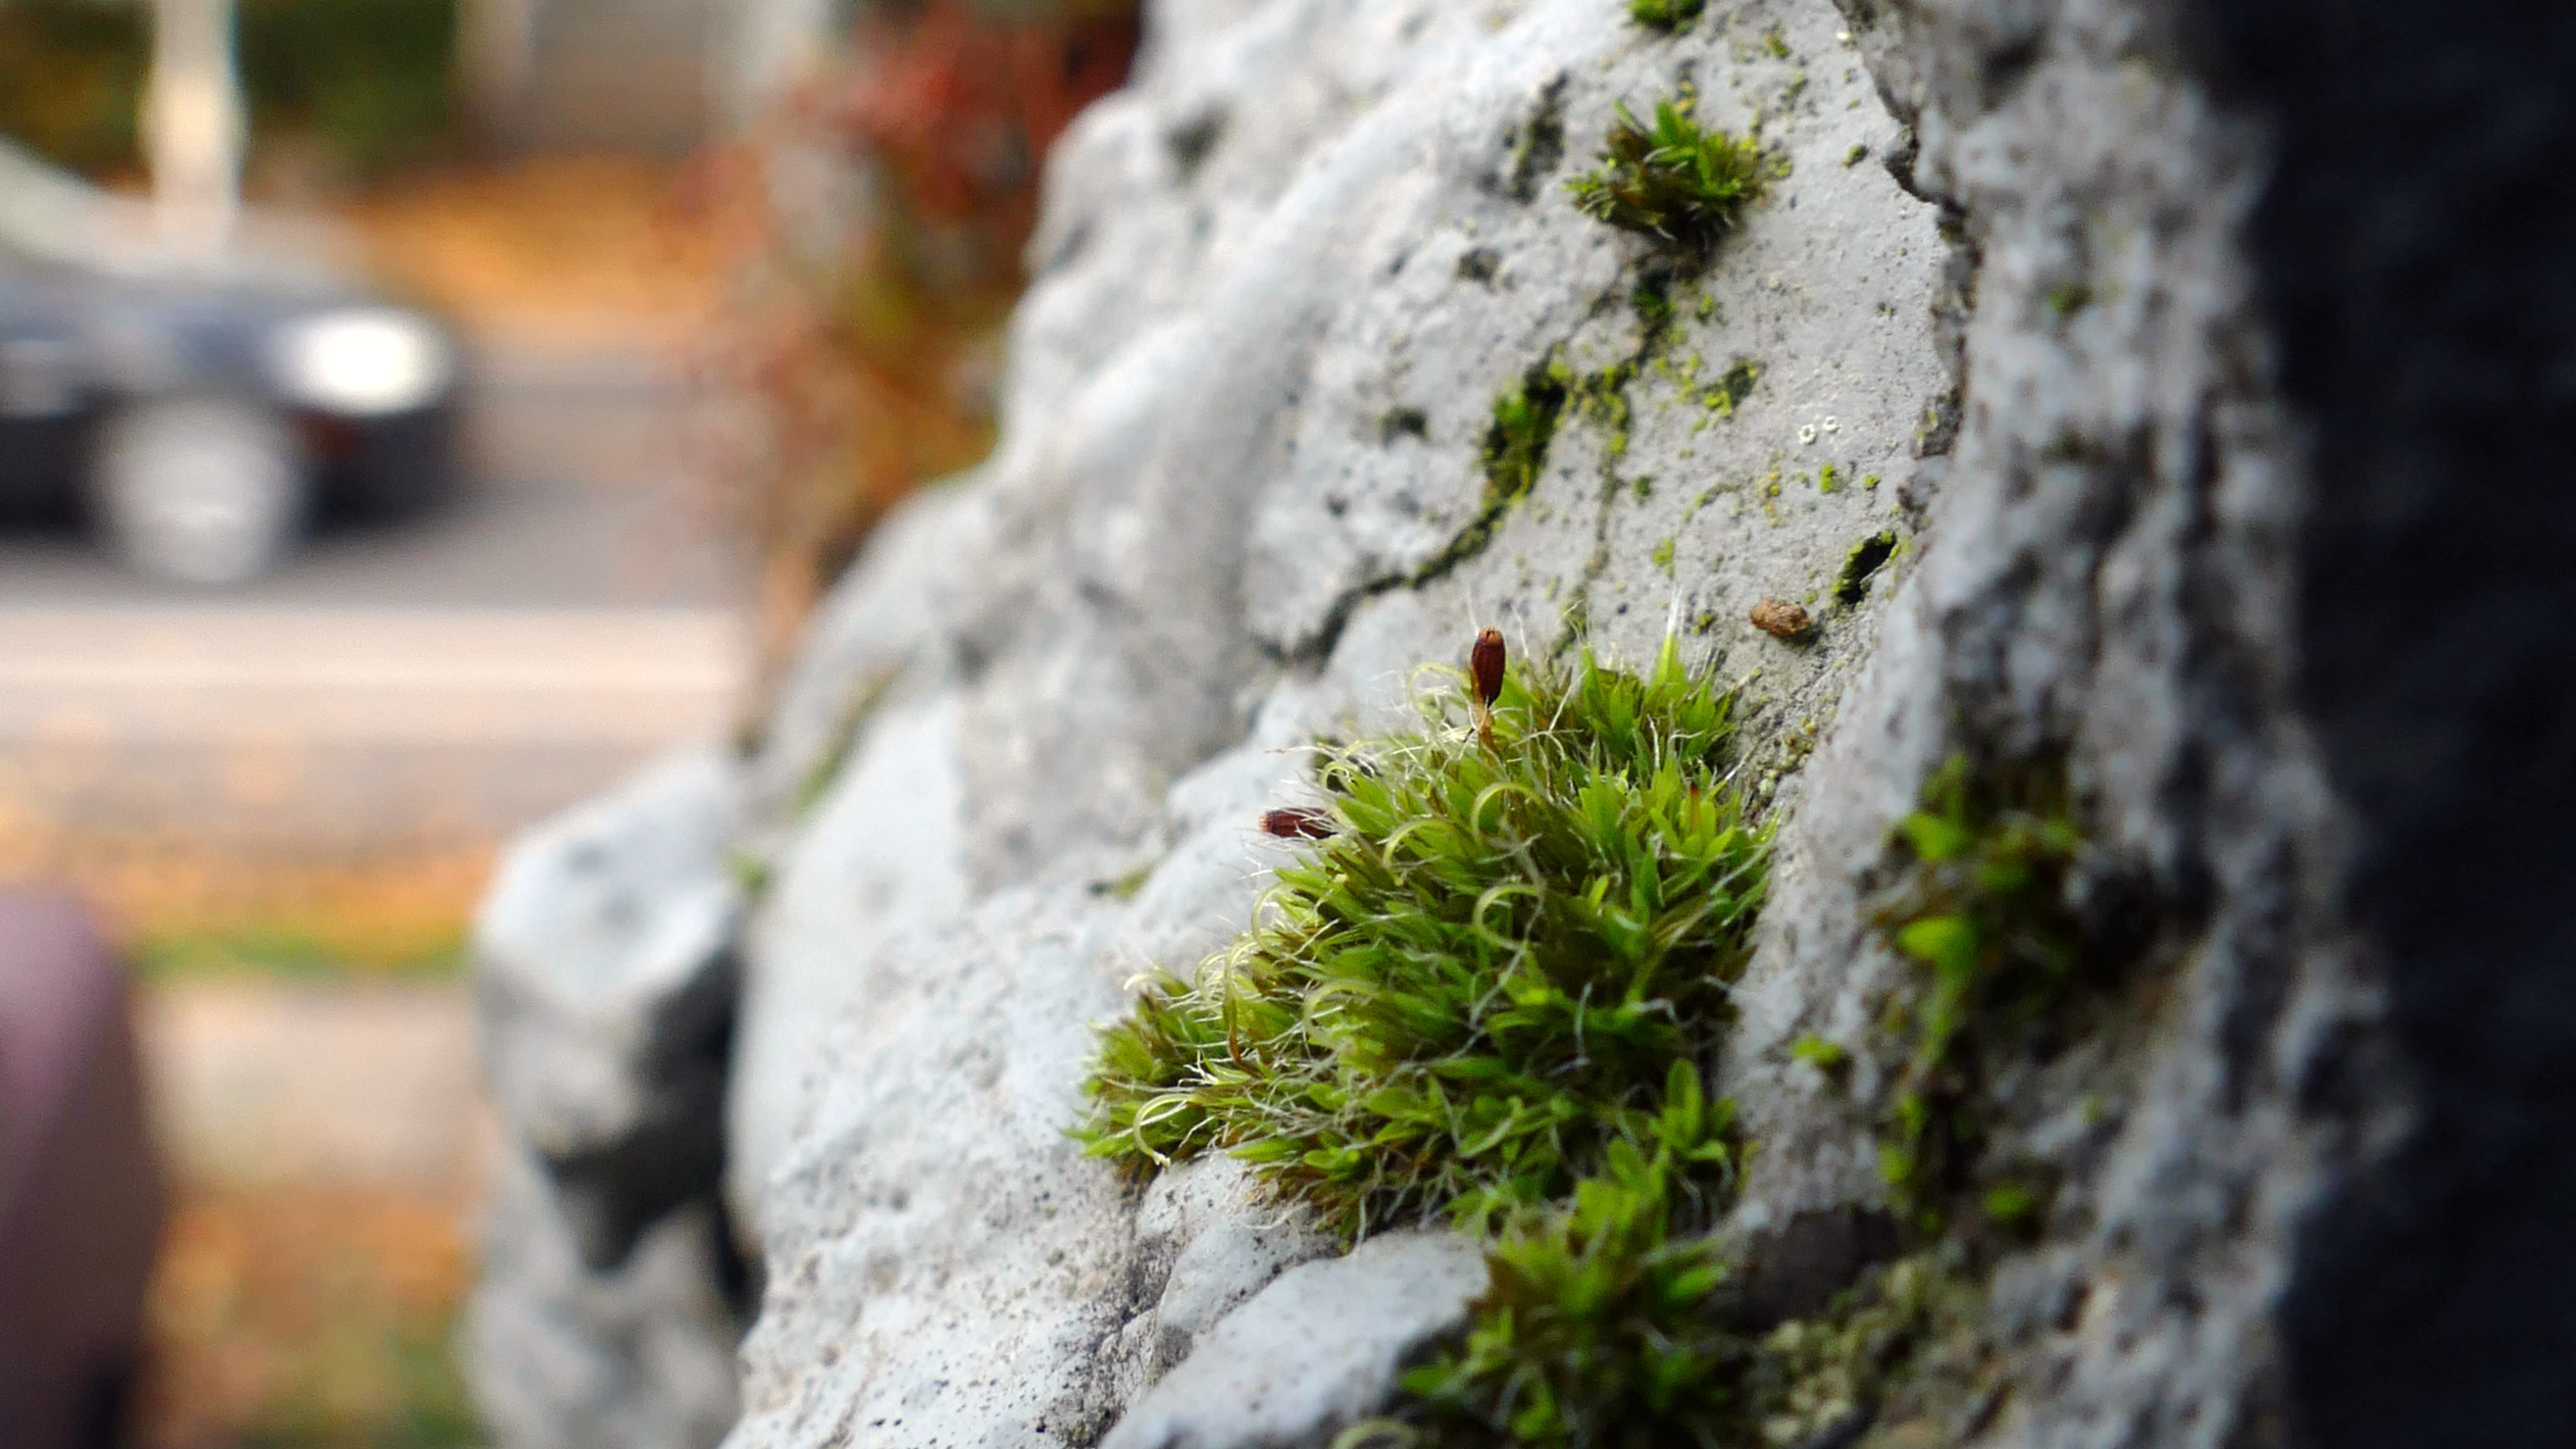 moss growing on a partially collapsed wall